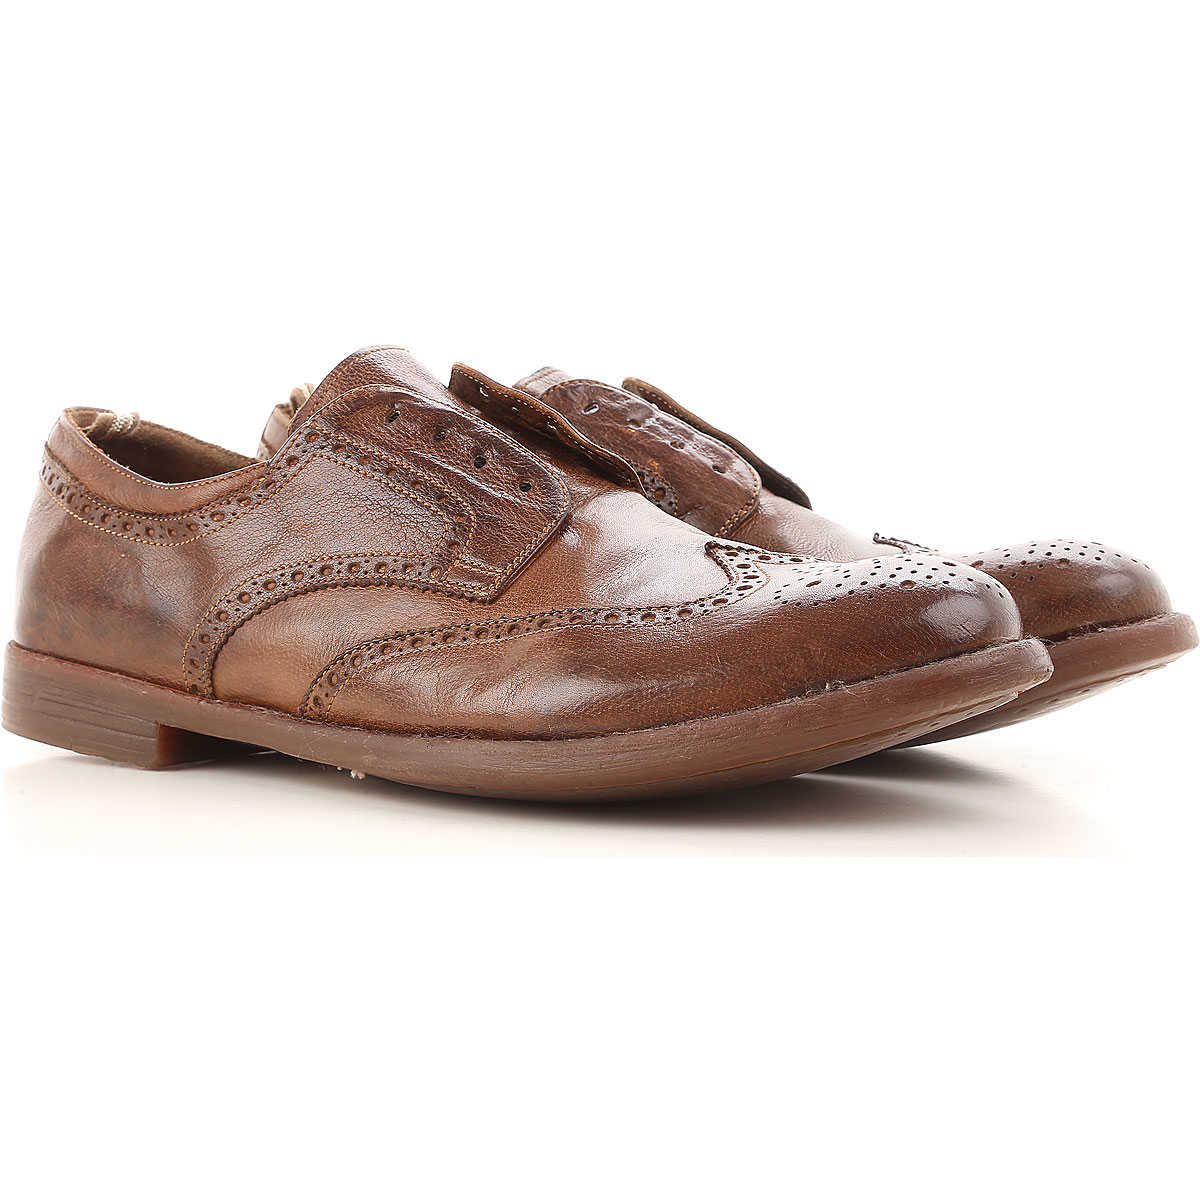 Officine Creative Lace Up Shoes for Men Oxfords Derbies and Brogues On Sale SE - GOOFASH